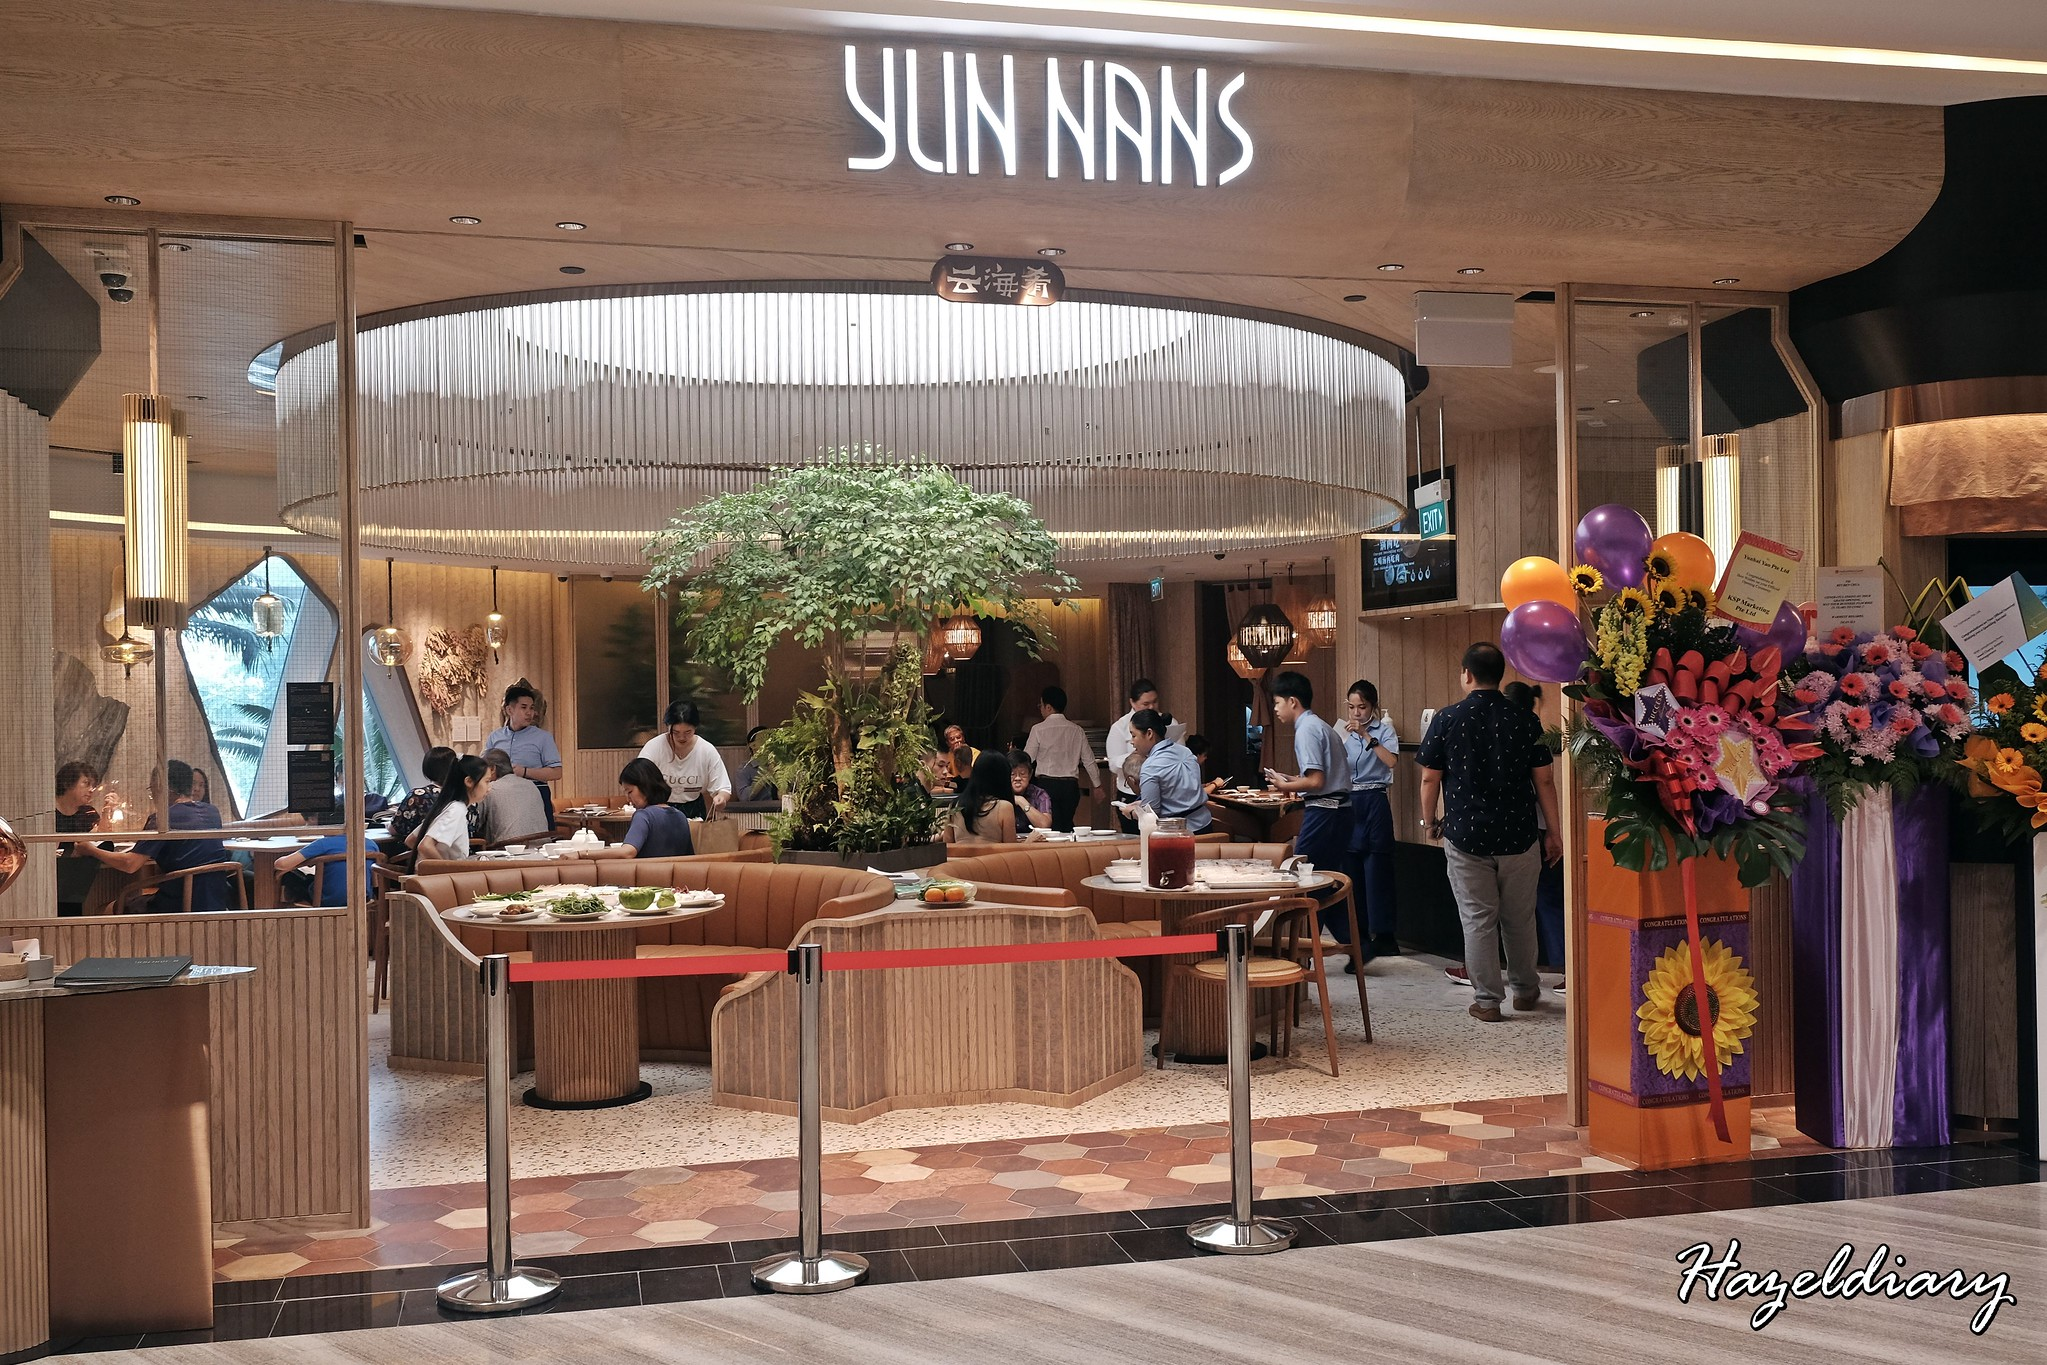 [SG EATS] Yun Nans (云海肴)– Largest Yunnan F&B Chain in China Opens in Jewel Changi Airport Singapore